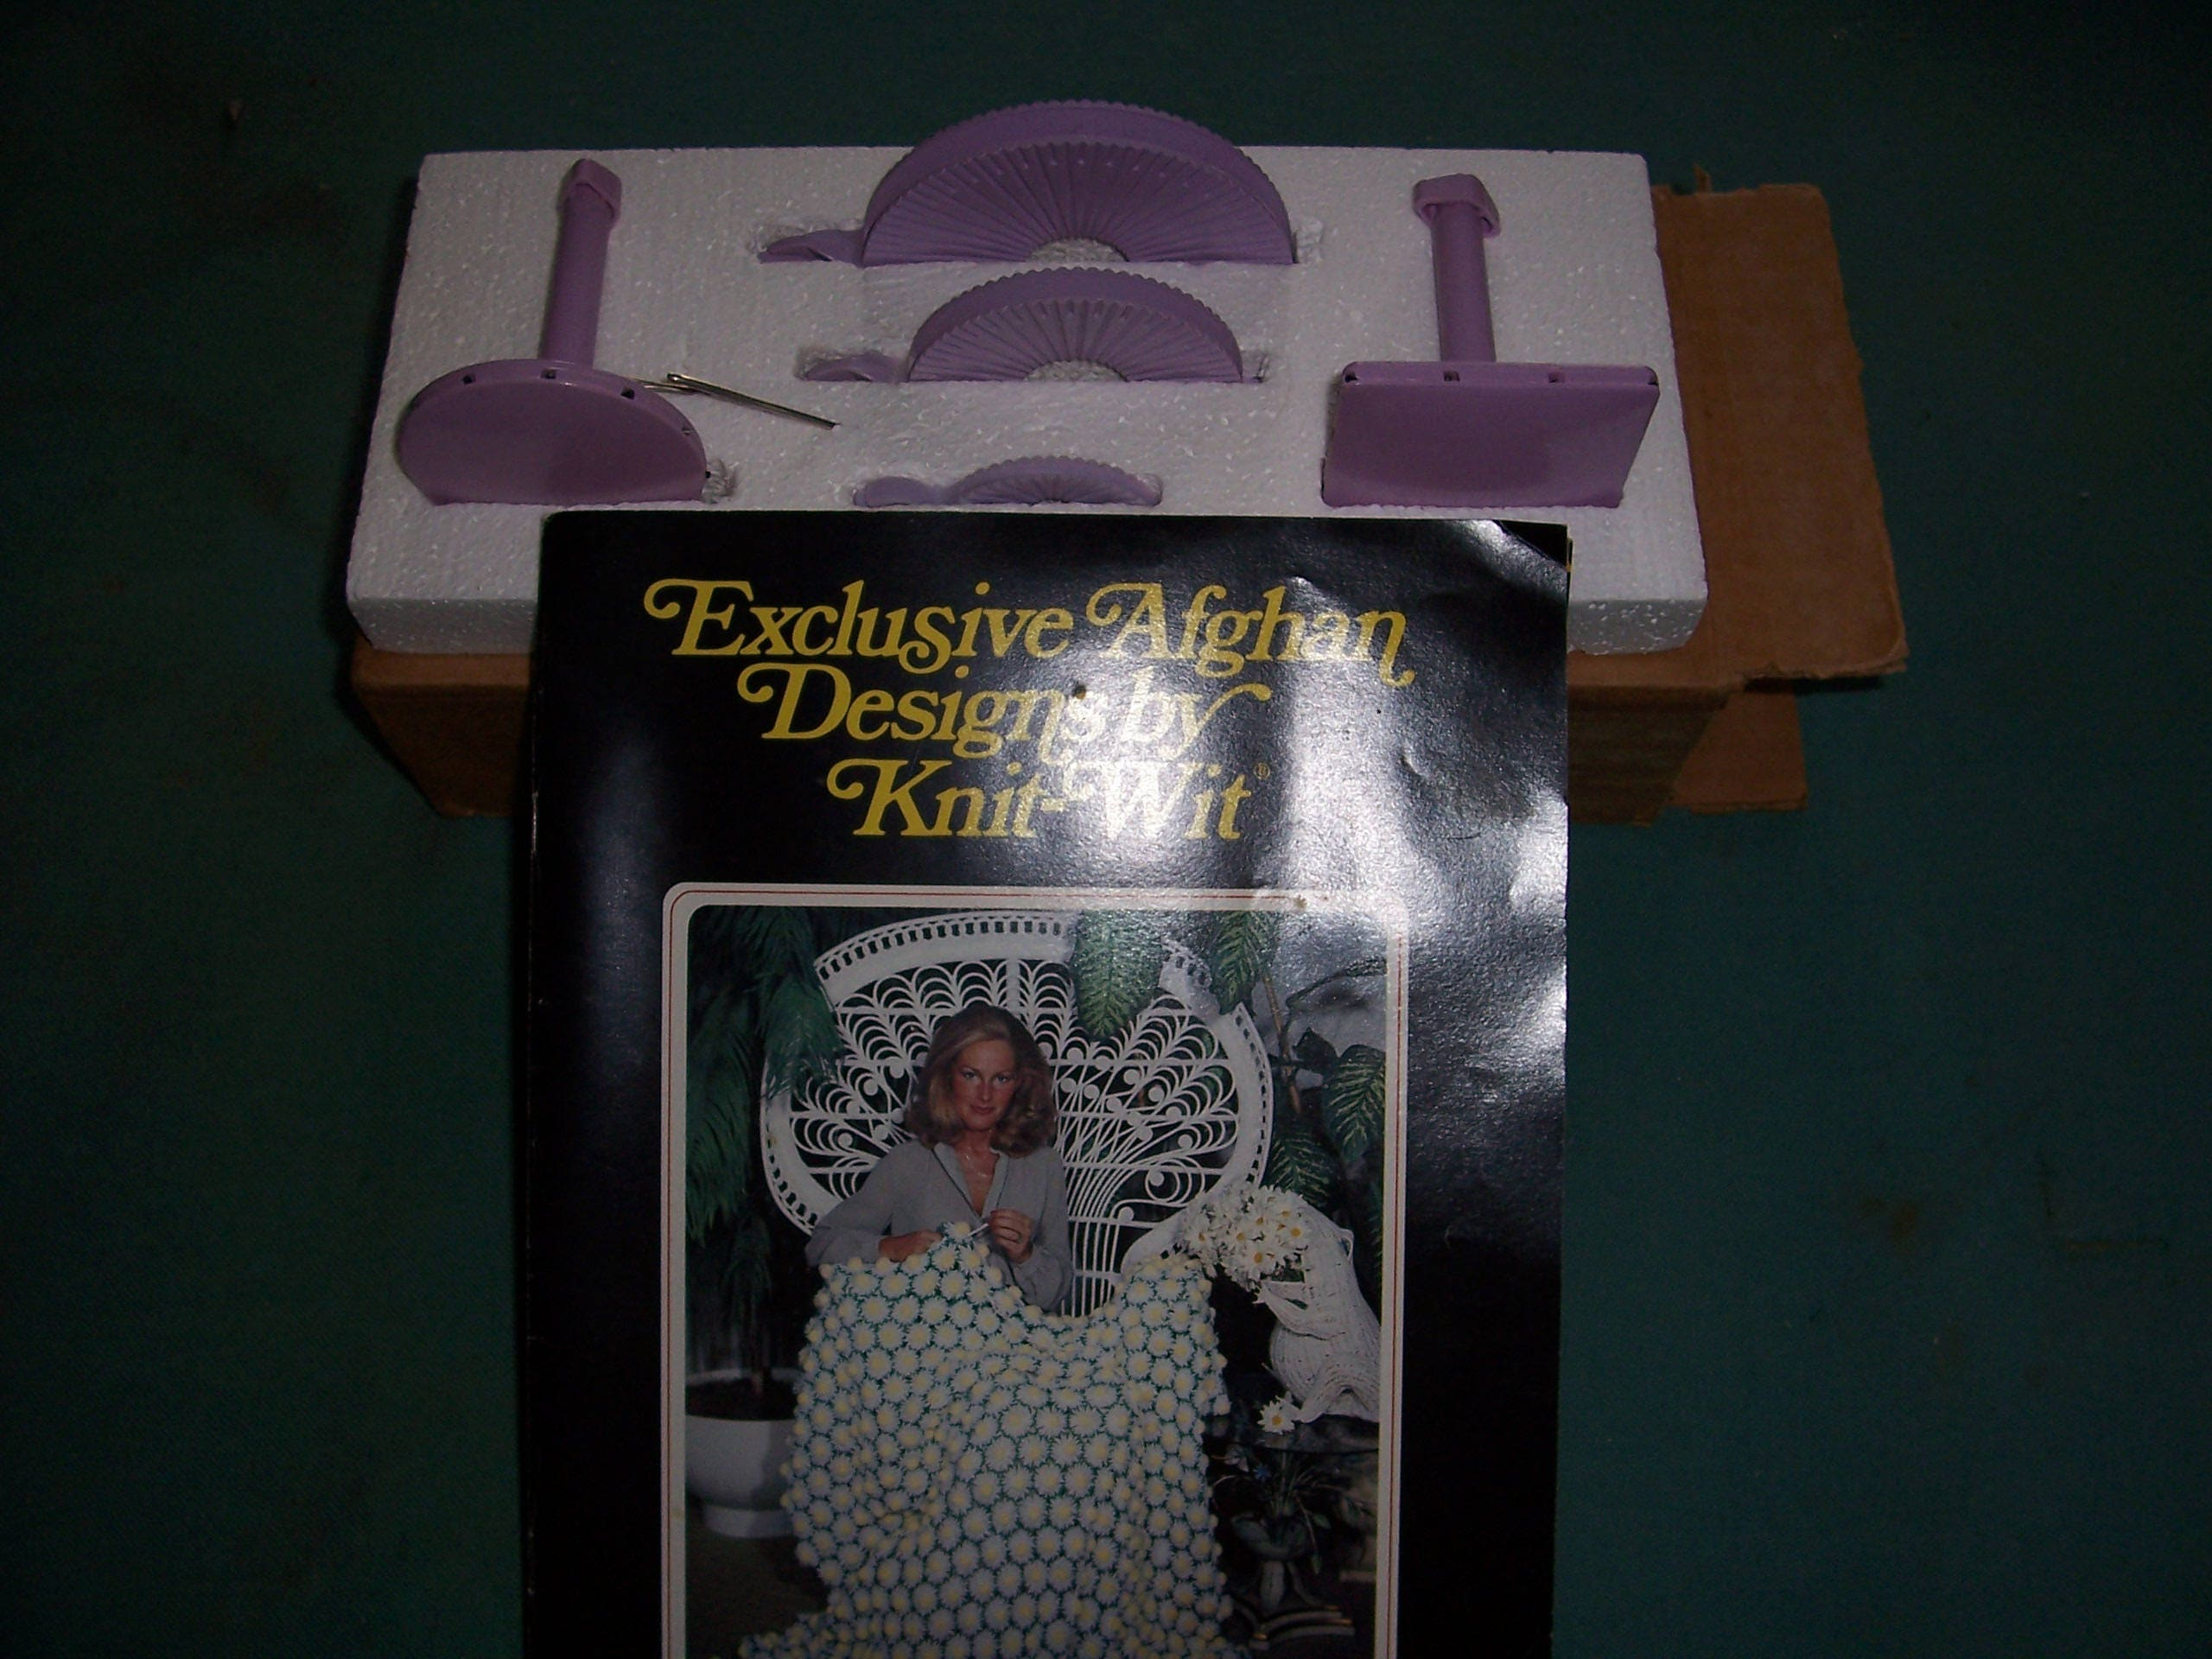 Vintage Knit Wit Knitting Tools Afghan Crochet Patterns Daisy Looms ...